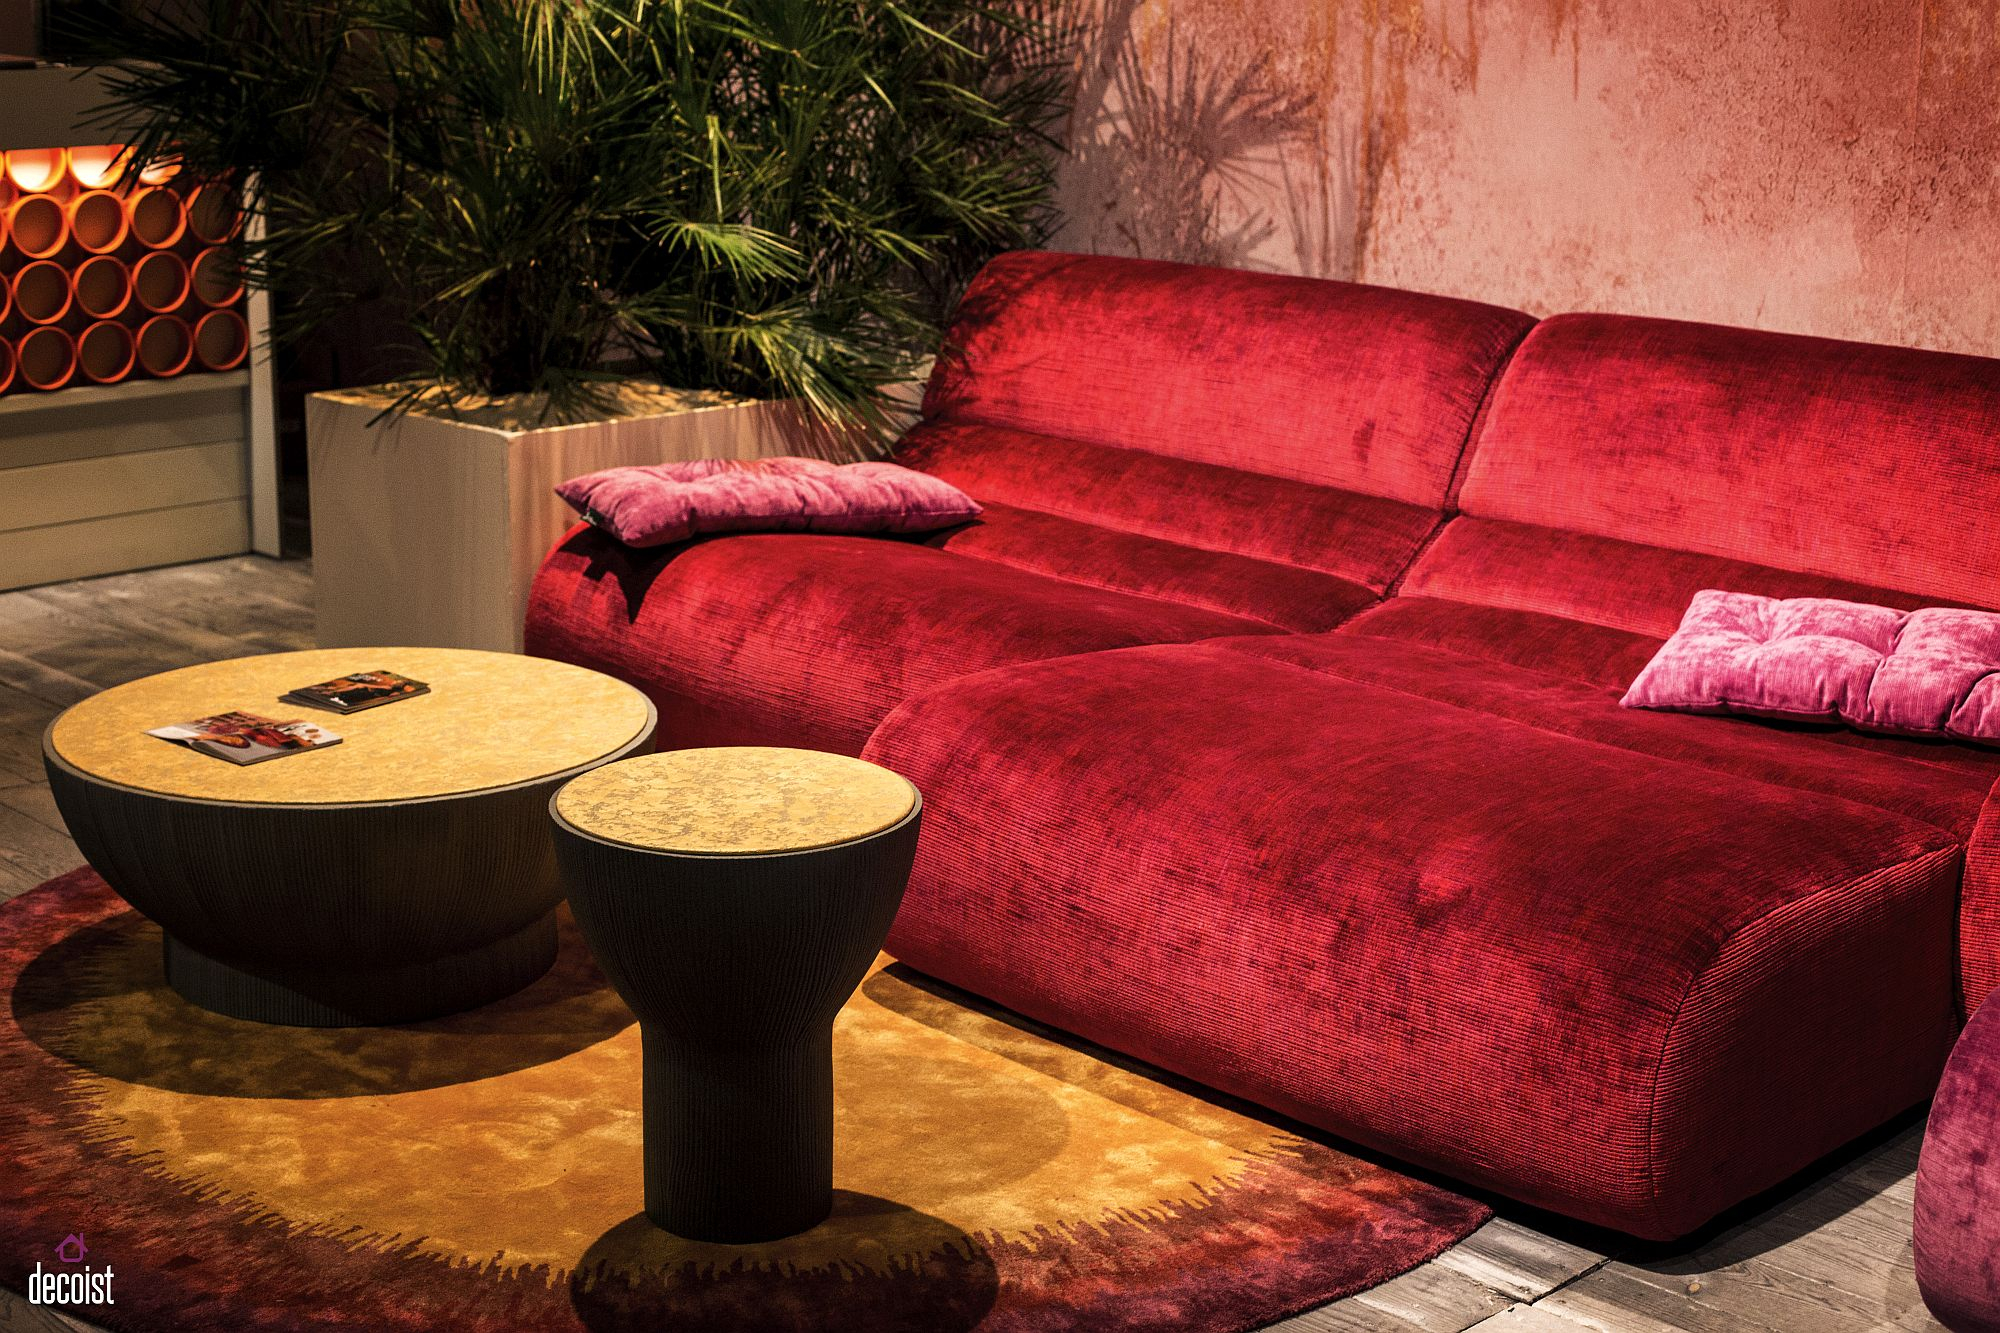 Velvety red luxury for the audacious interior